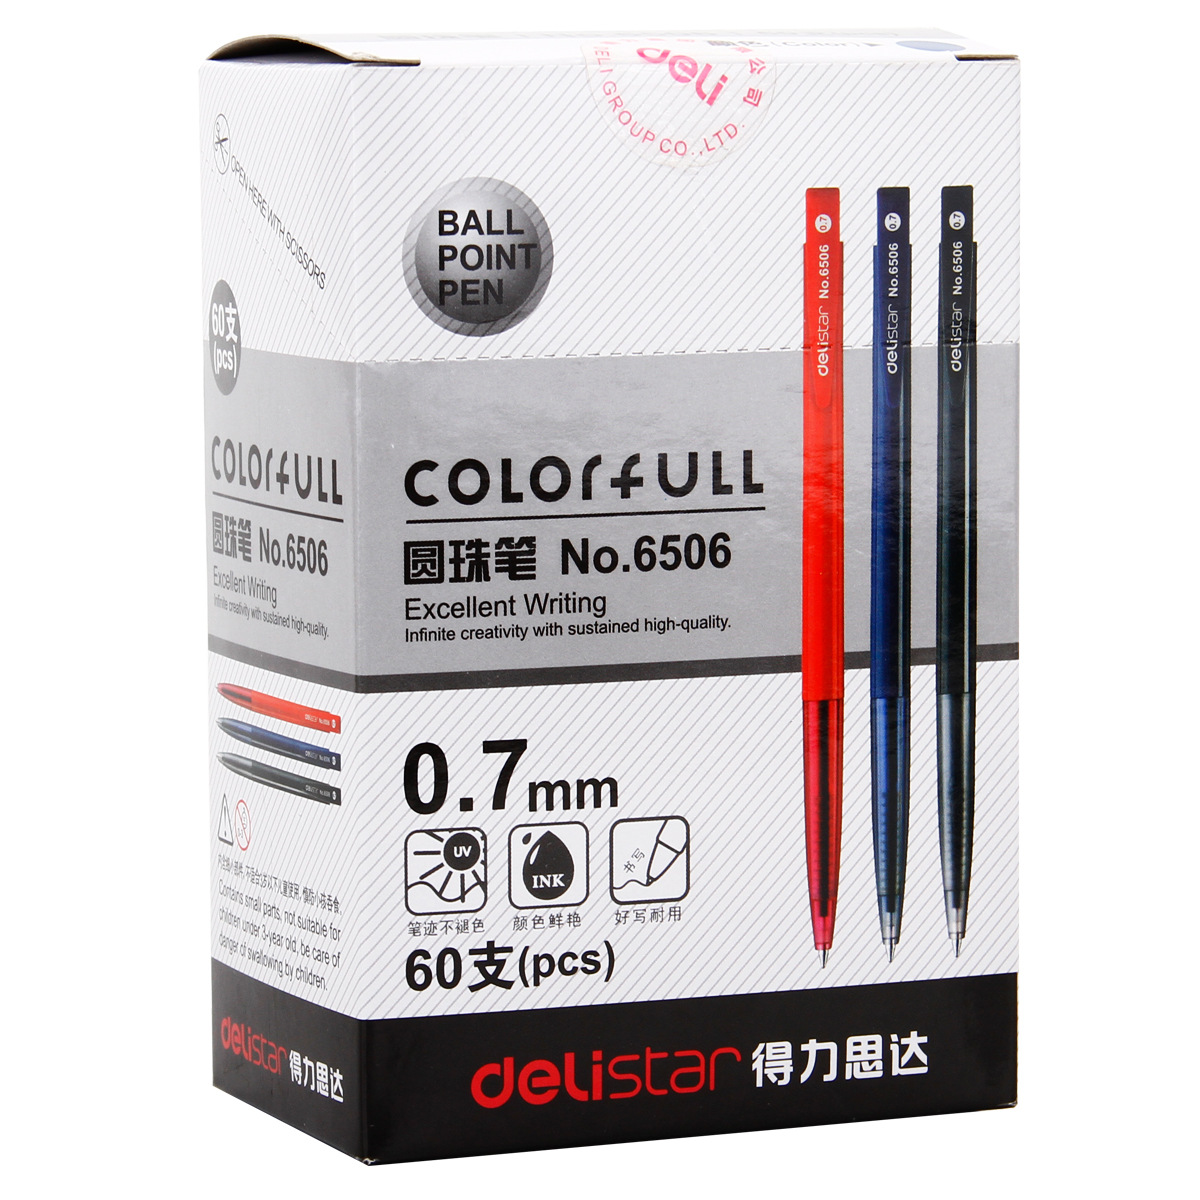 6506 Automatic Ballpoint Pen Click-Type 0.7mm Writing Red Black Ballpoint Test gel Pen Office Supplies Learning Stationery